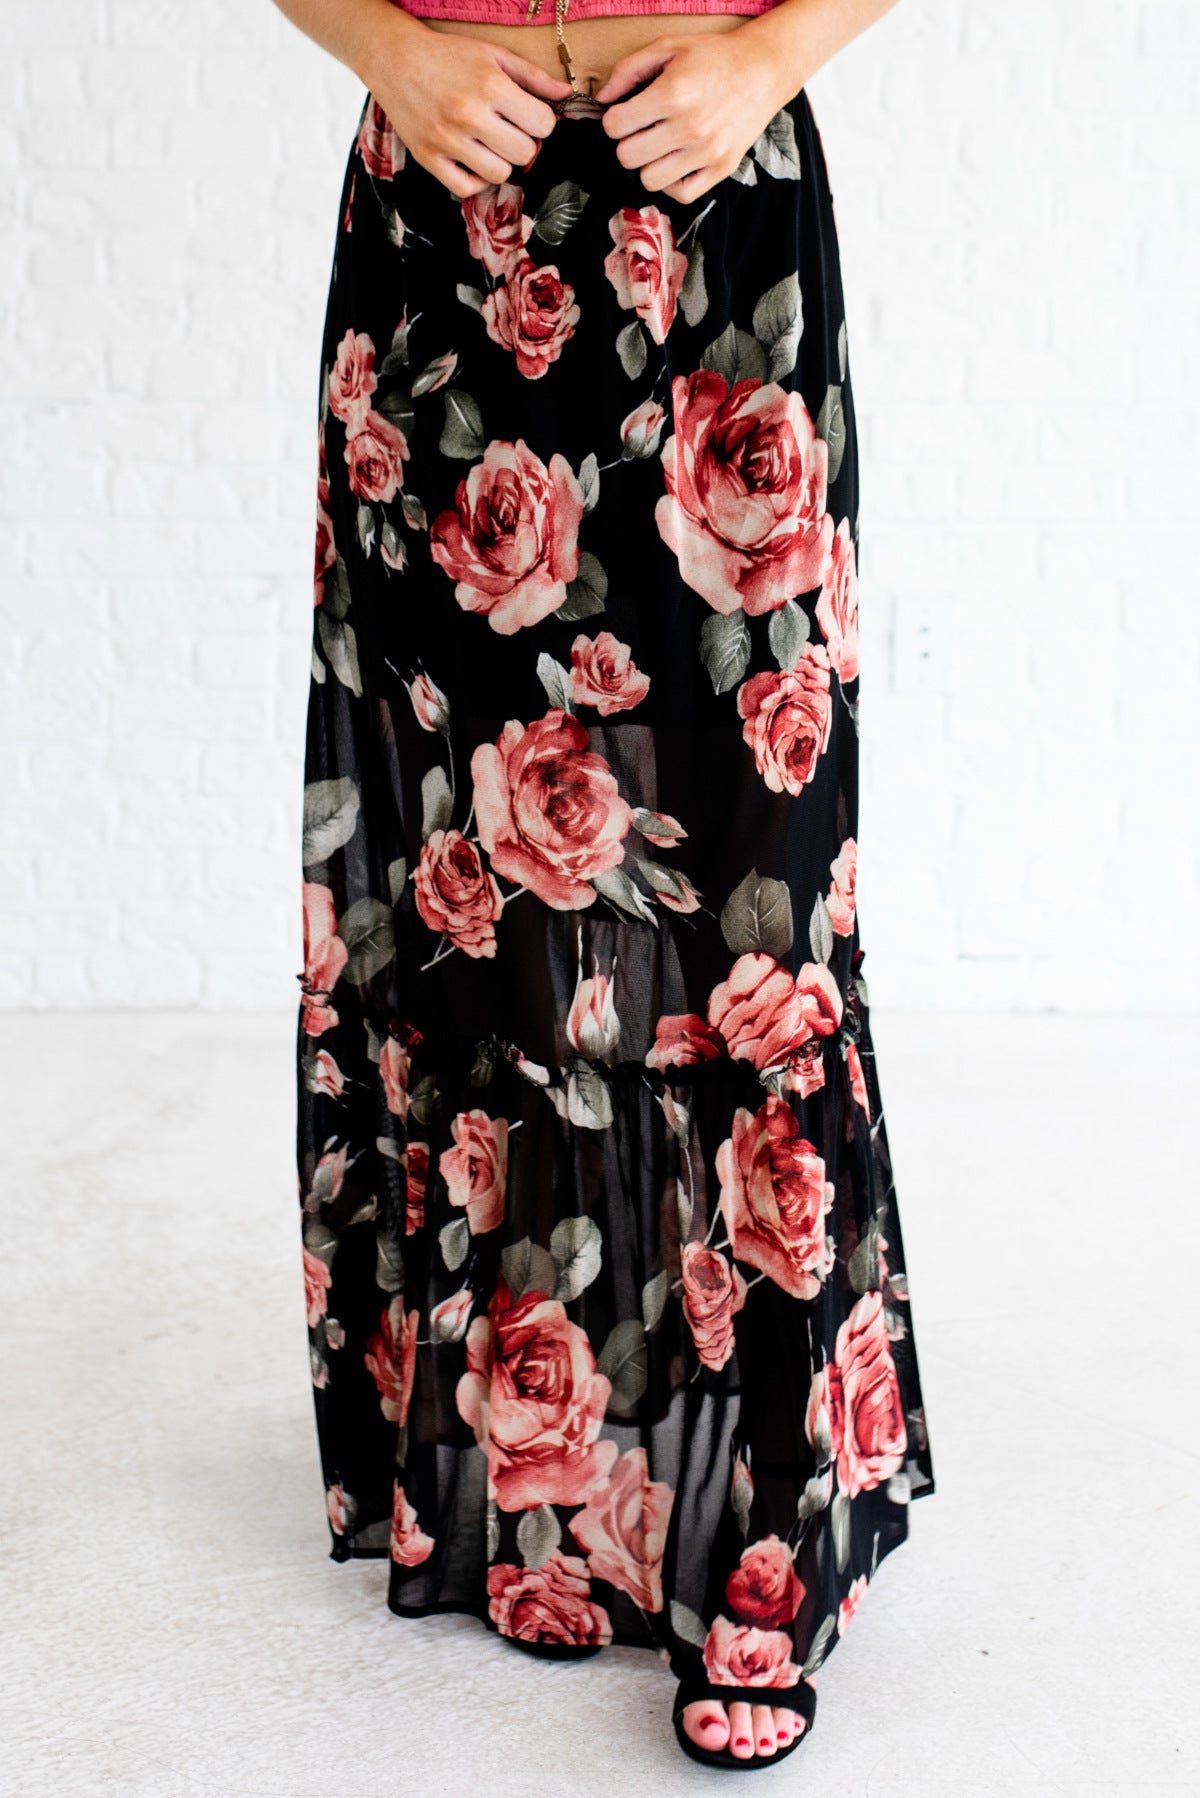 faf4d95b66 Black and Red Floral Rose Patterned Boutique Maxi Skirts for Women